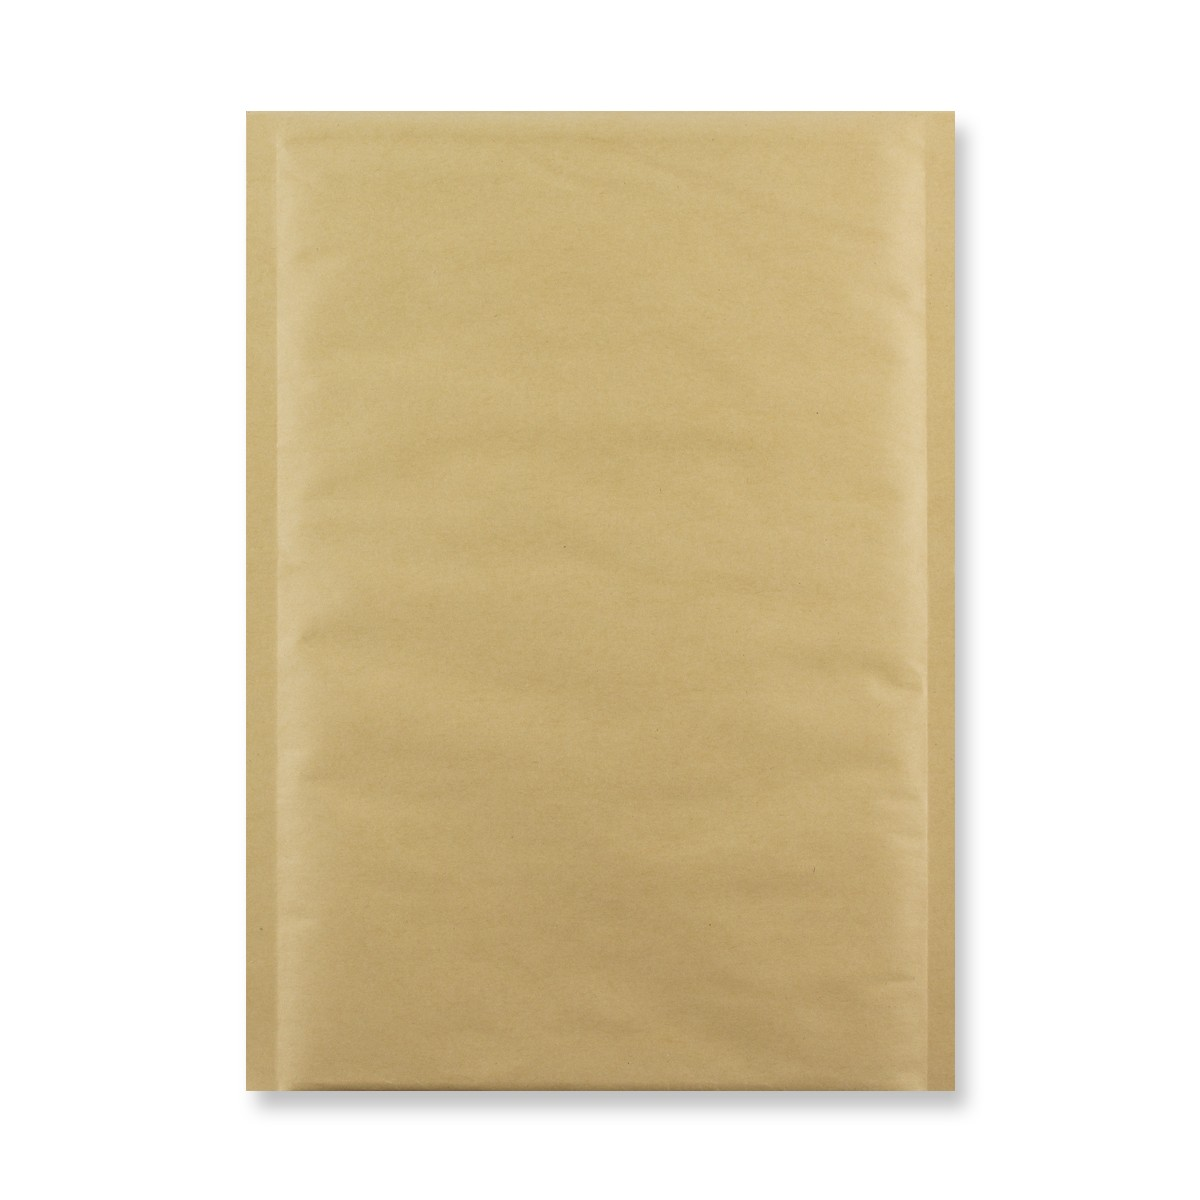 340 x 220mm MANILLA BUBBLE BAG ENVELOPES